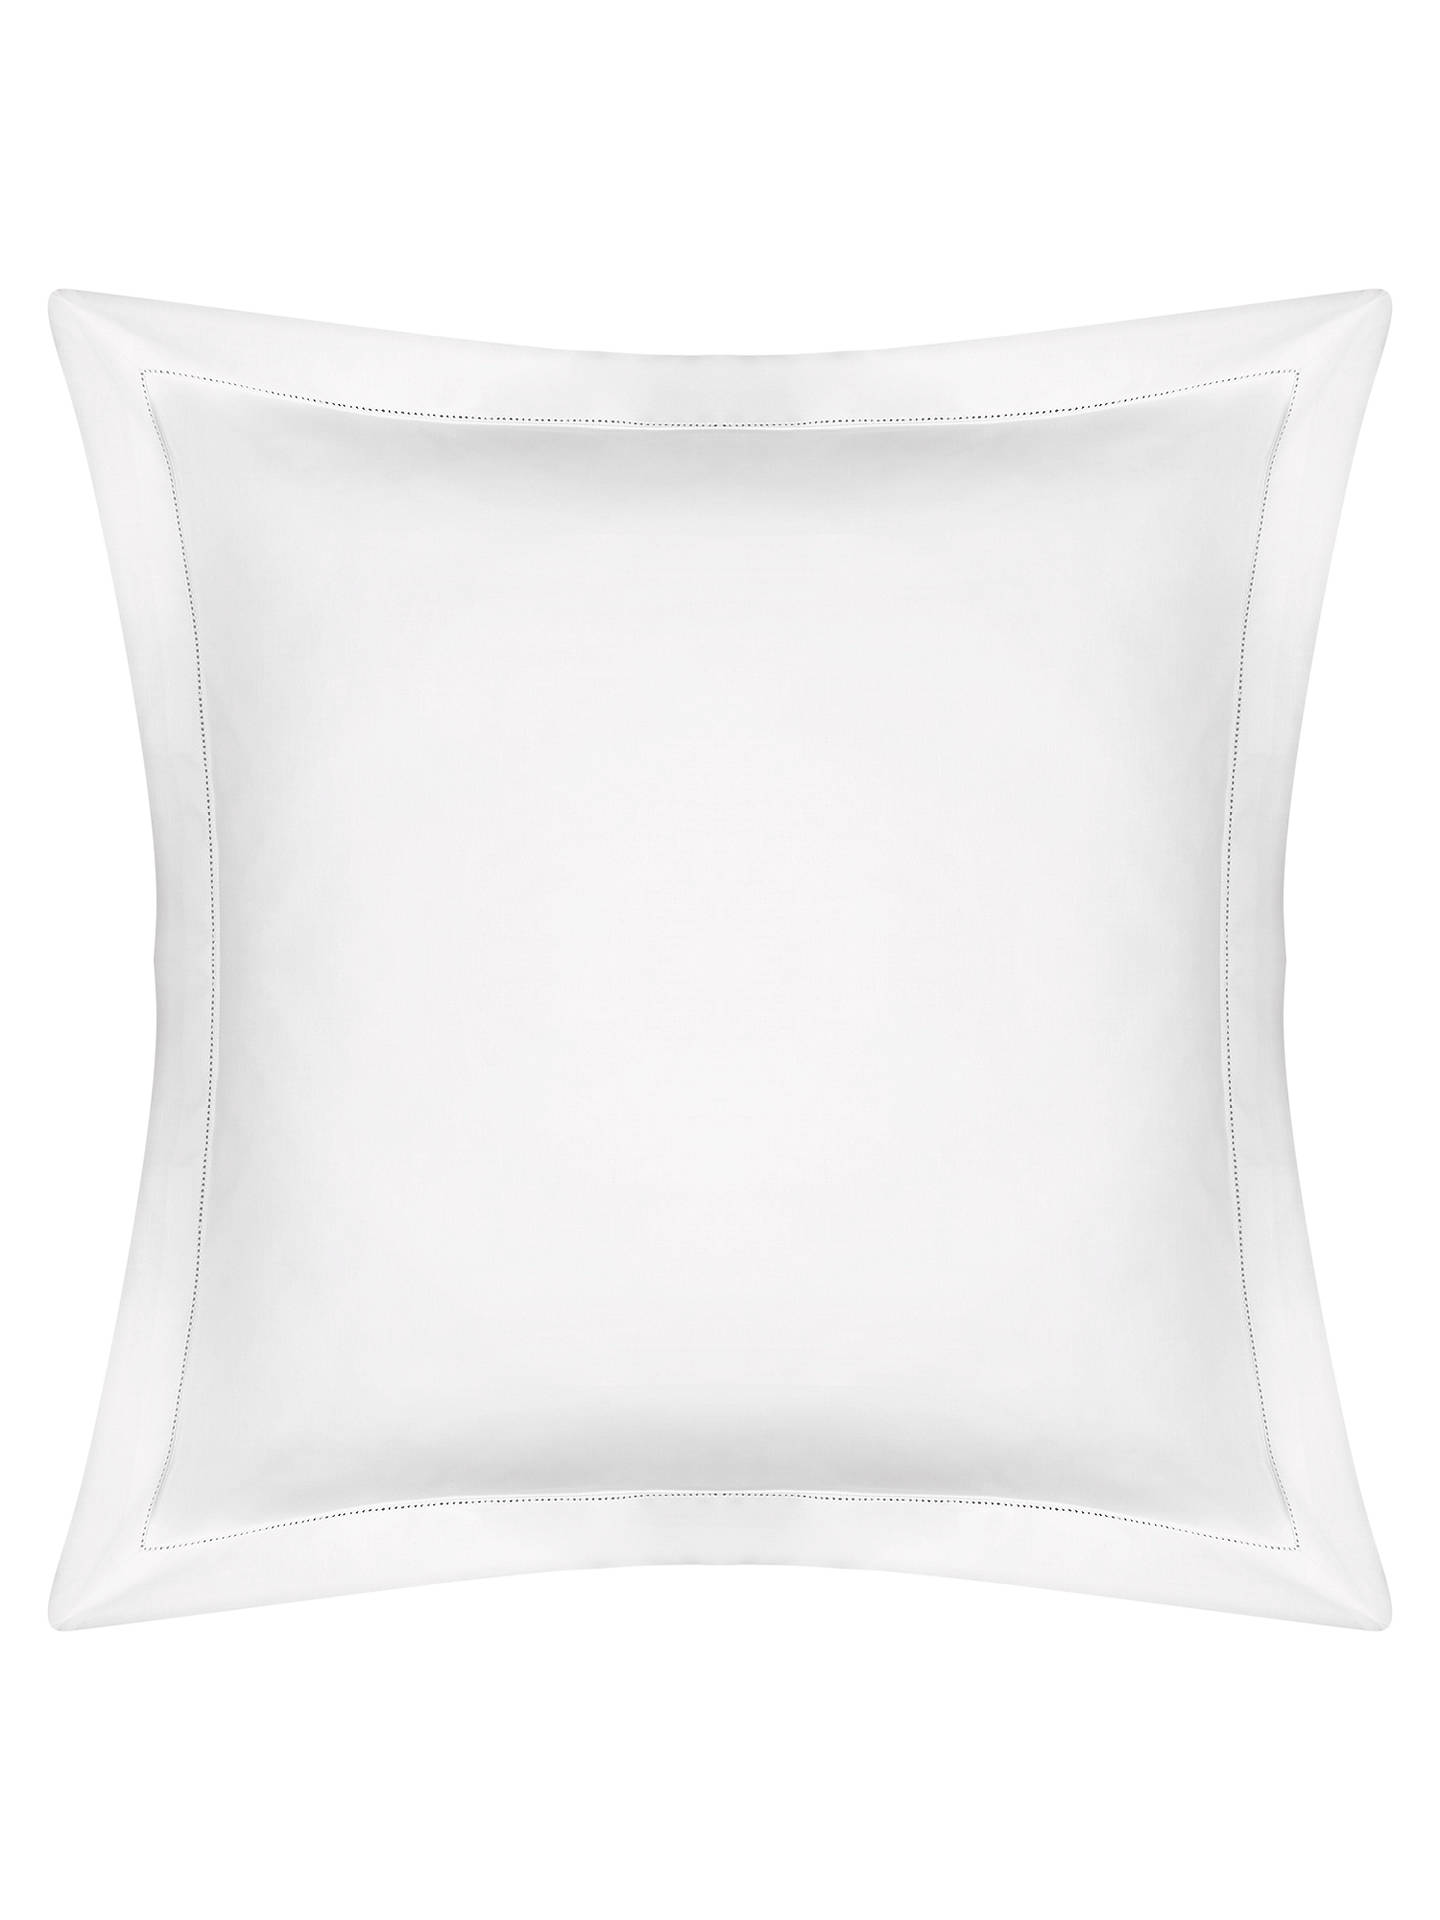 BuyPeter Reed Linen Blend Hem Stitch Square Pillowcase Online at johnlewis.com